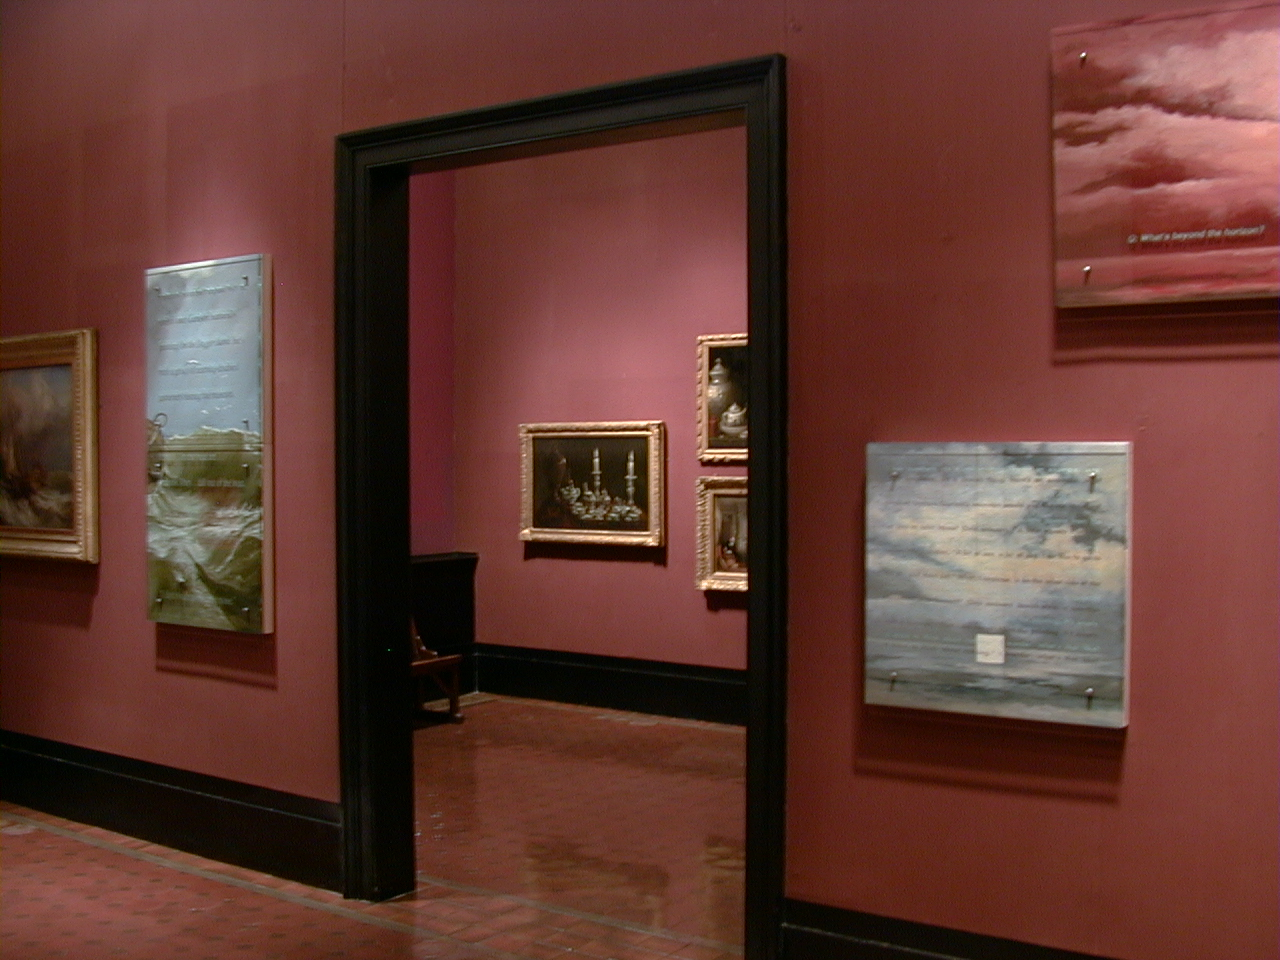 Ken Aptekar, Q&A, V&A, installation view, Victoria and Albert Museum, London